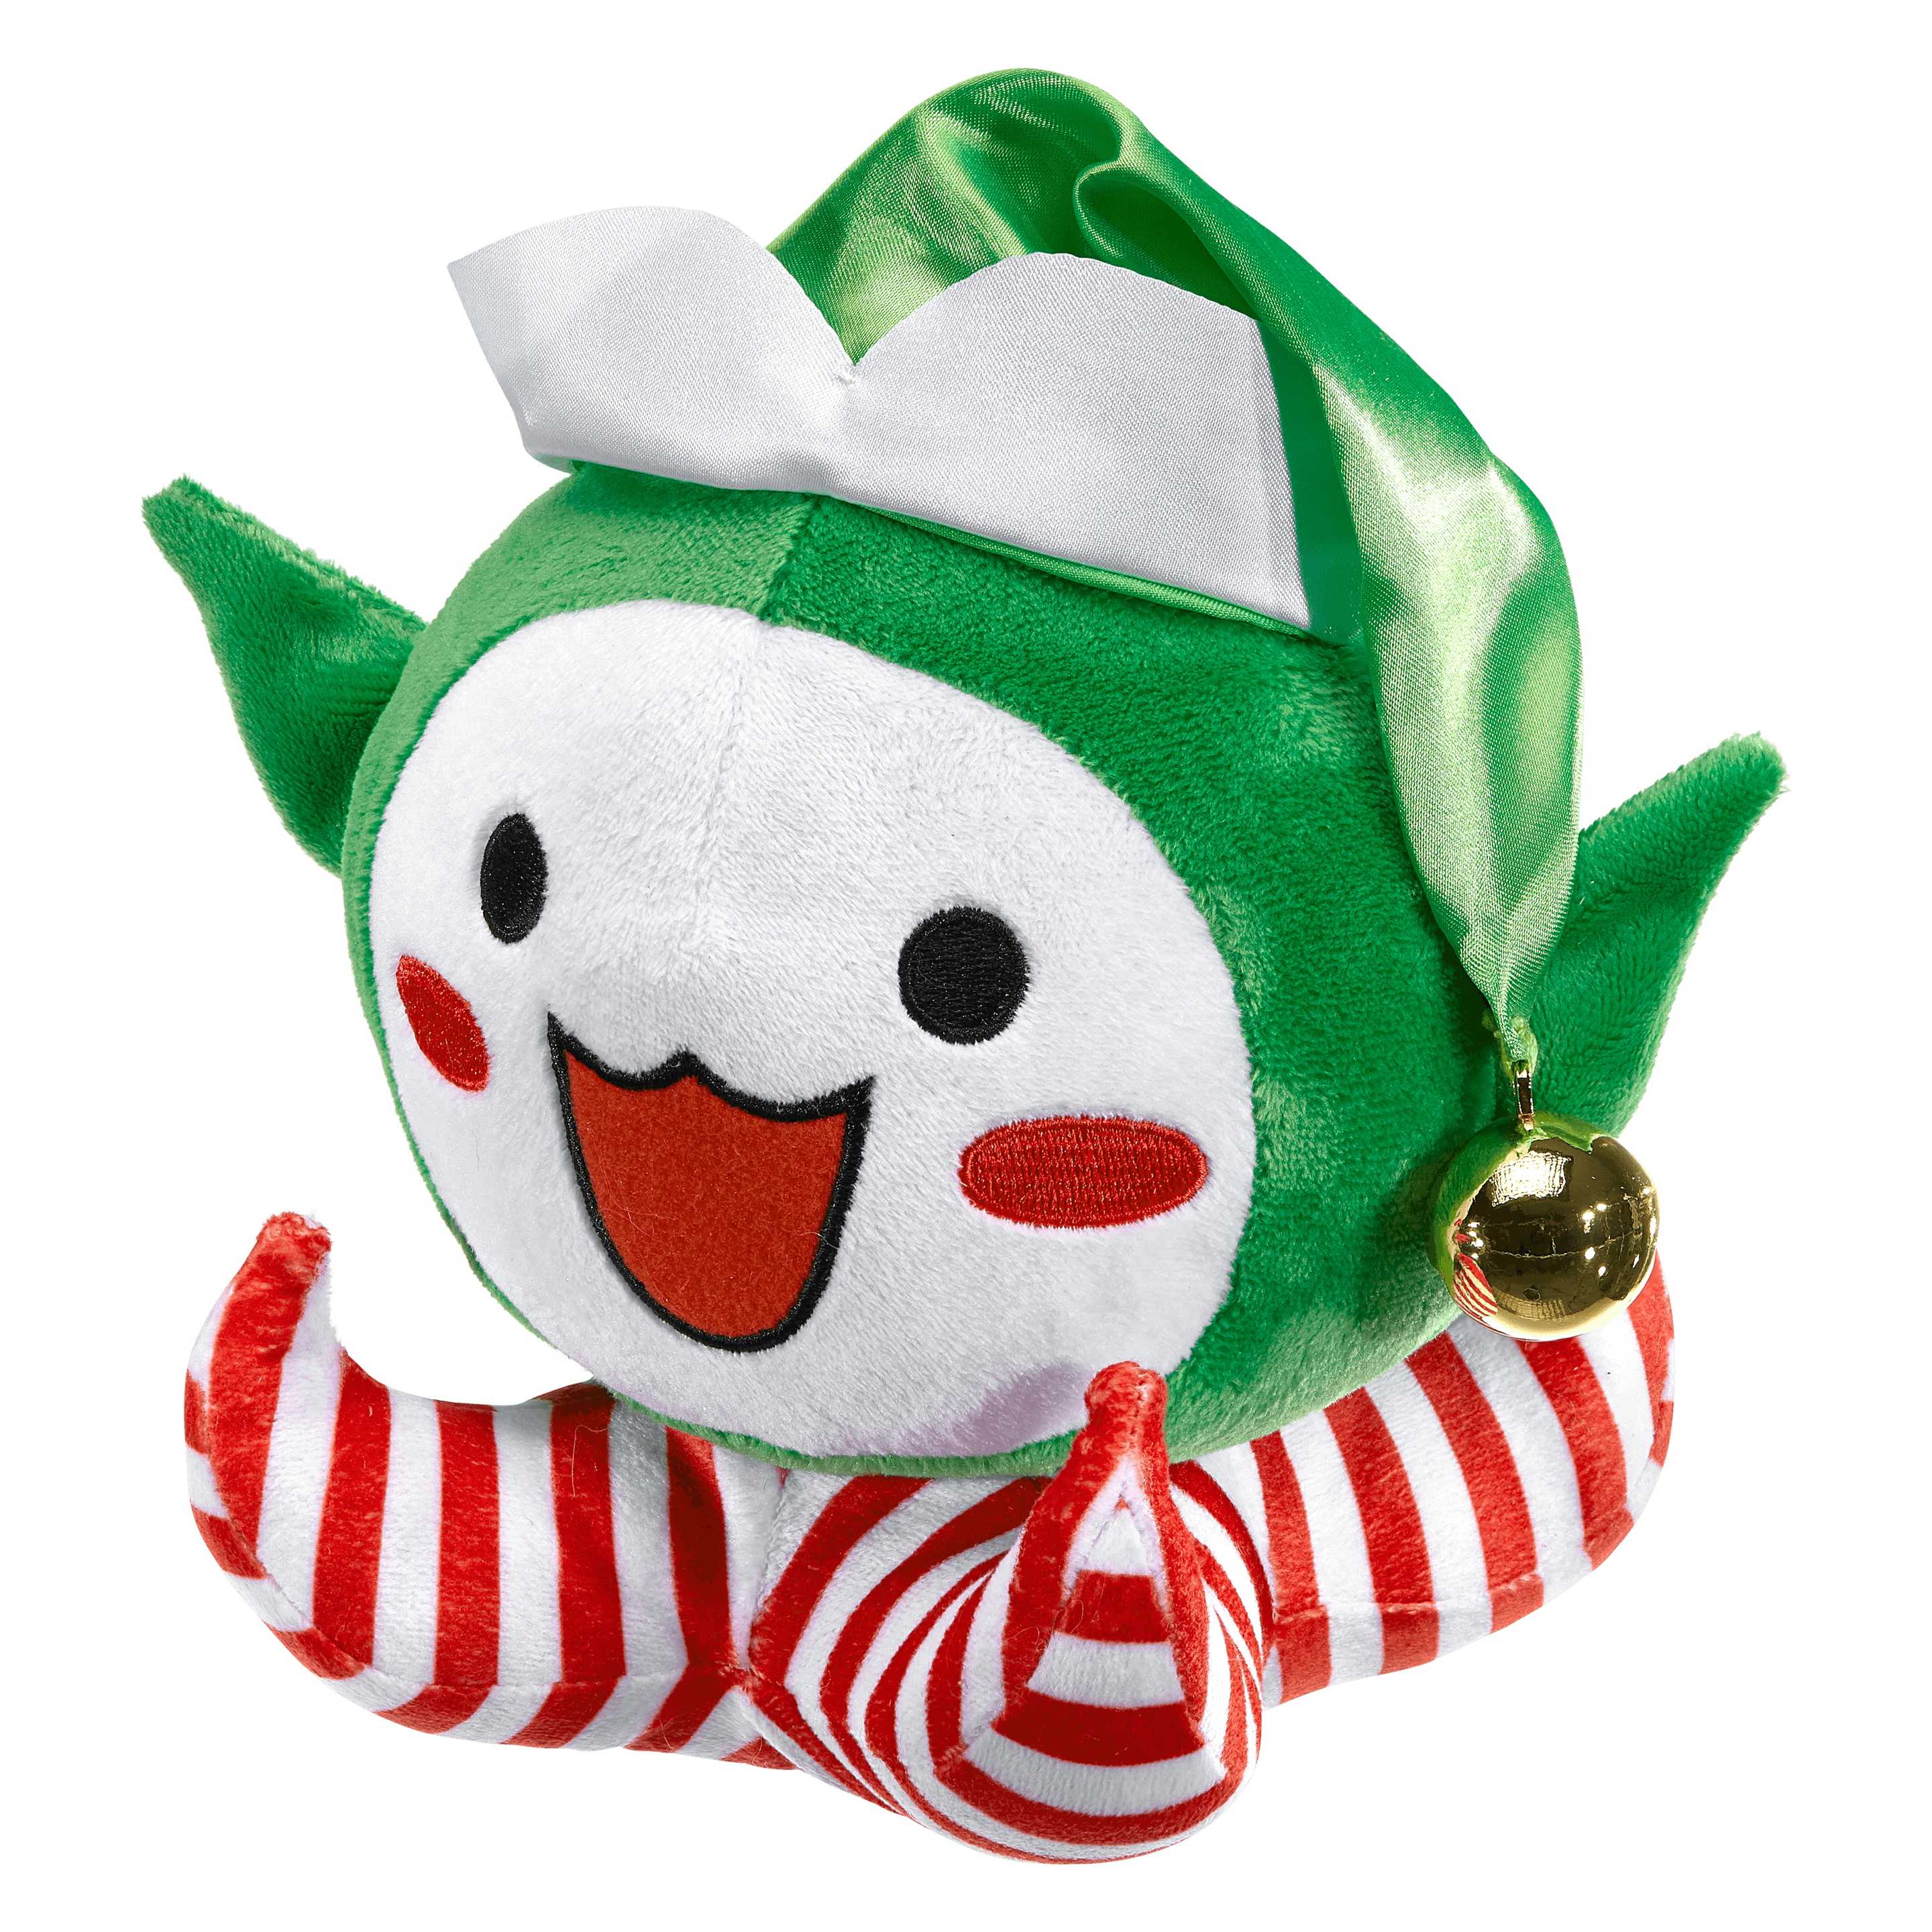 18-ow-pachielf-plush-gallery.png